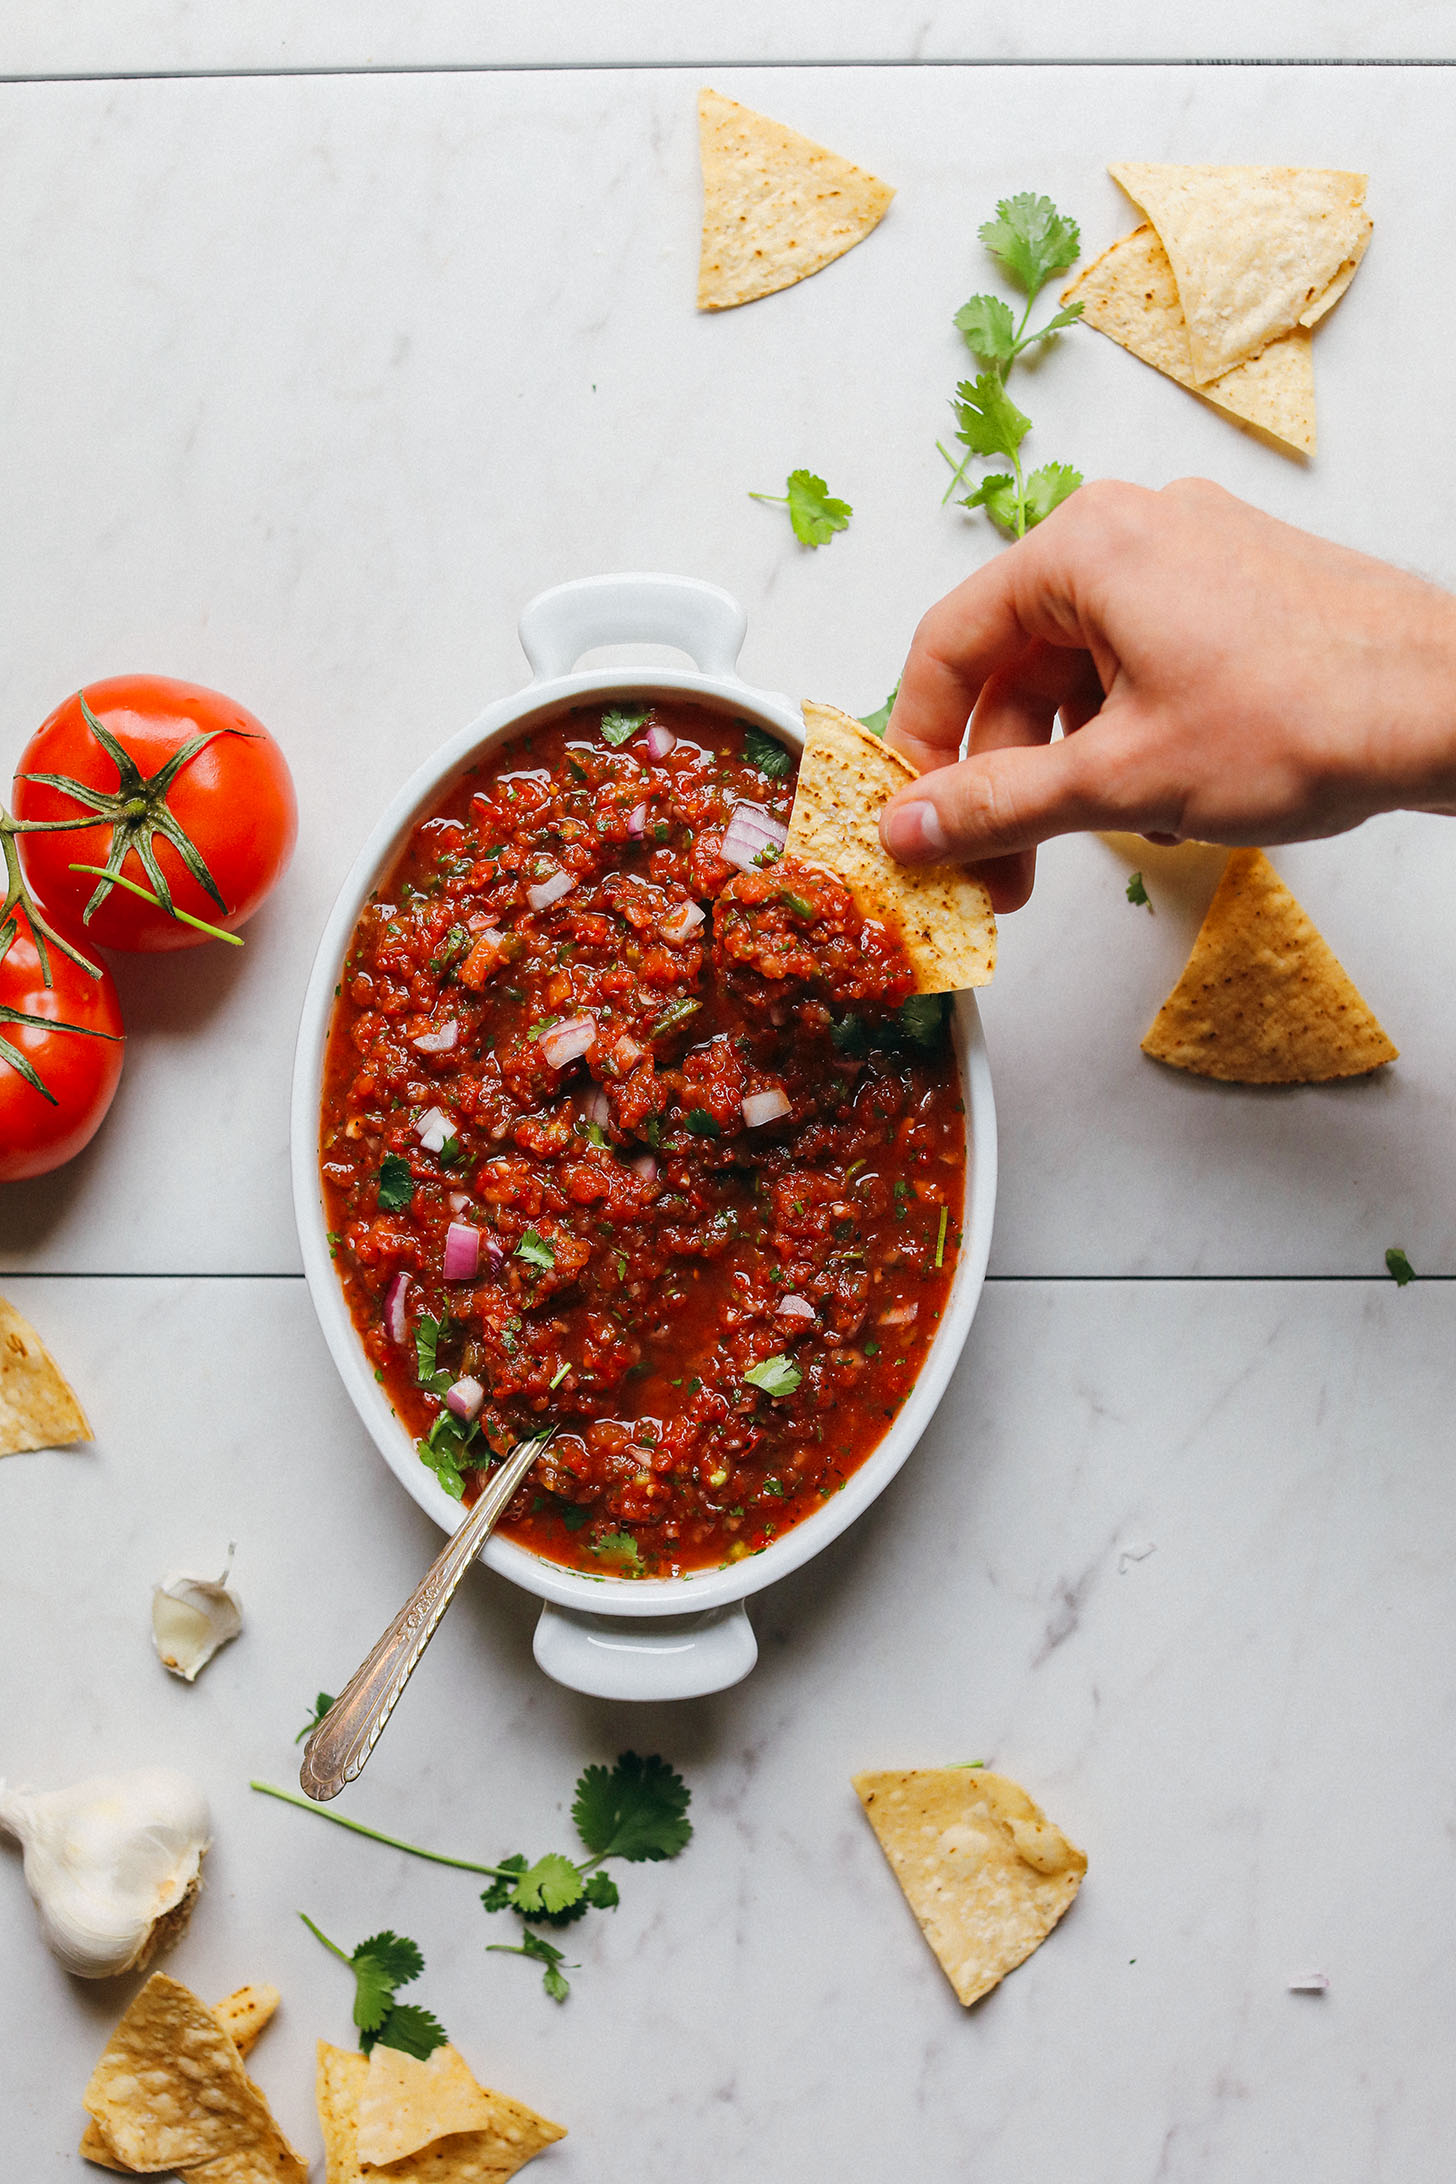 Dipping a tortilla chip into a bowl of our Perfect Red Salsa recipe